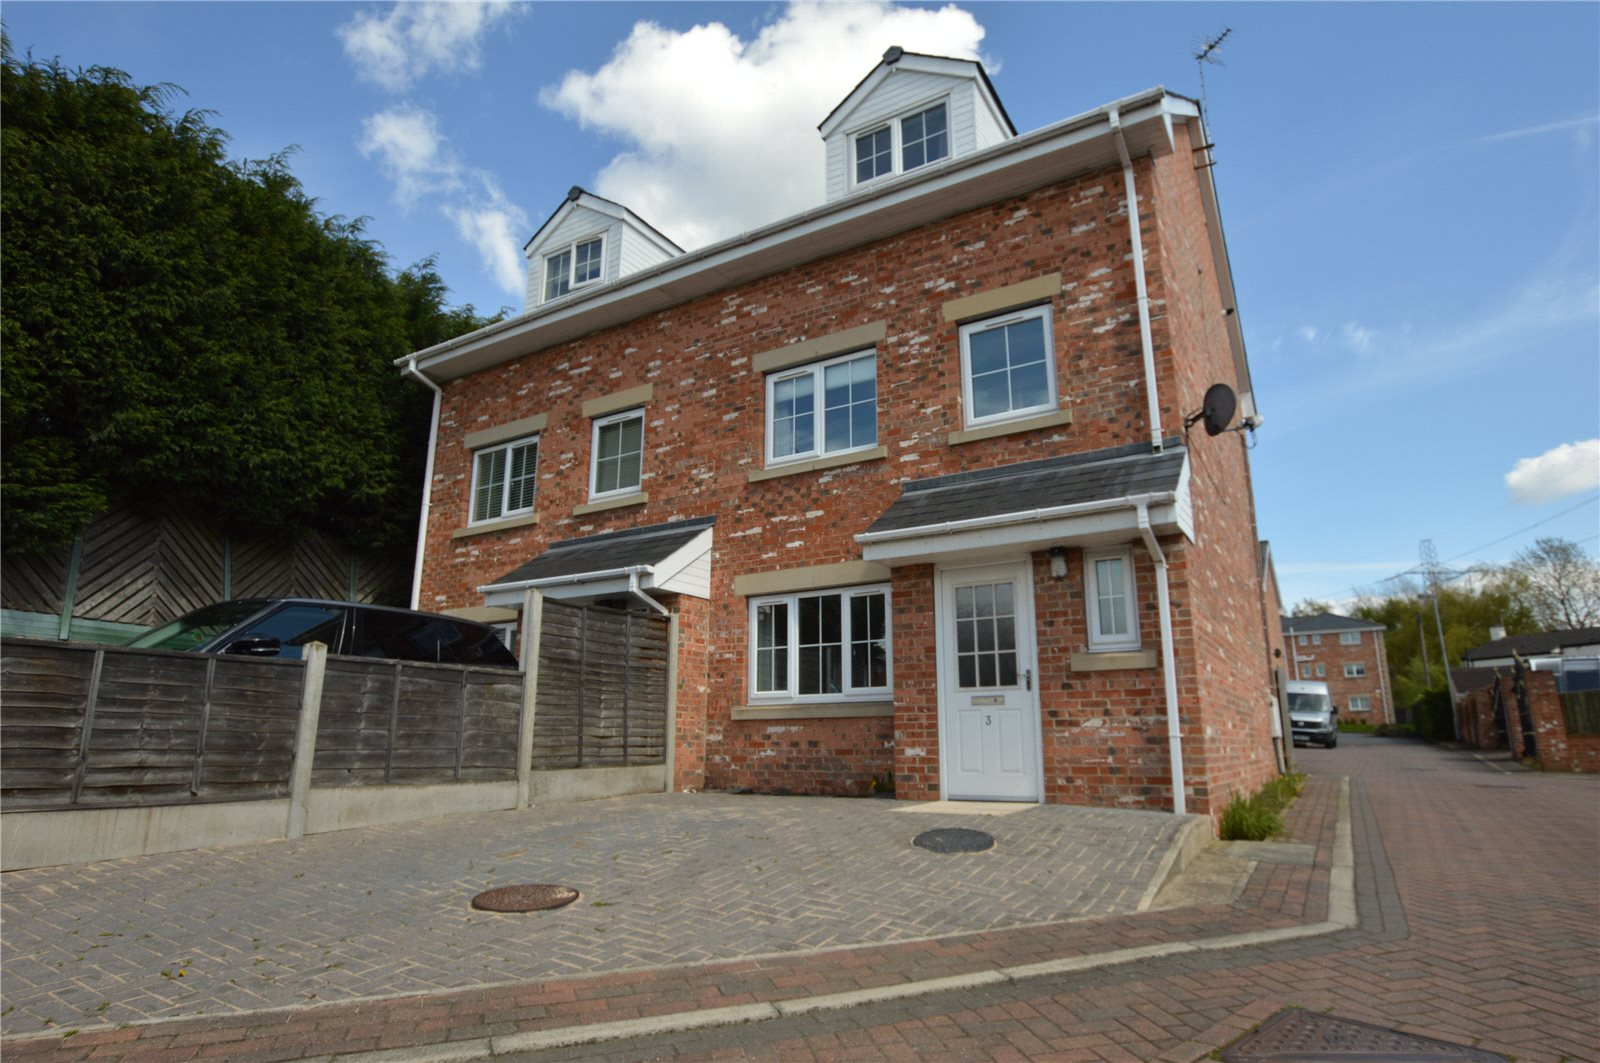 Property for sale in Wakefield, exterior front of home, semi detached red brick